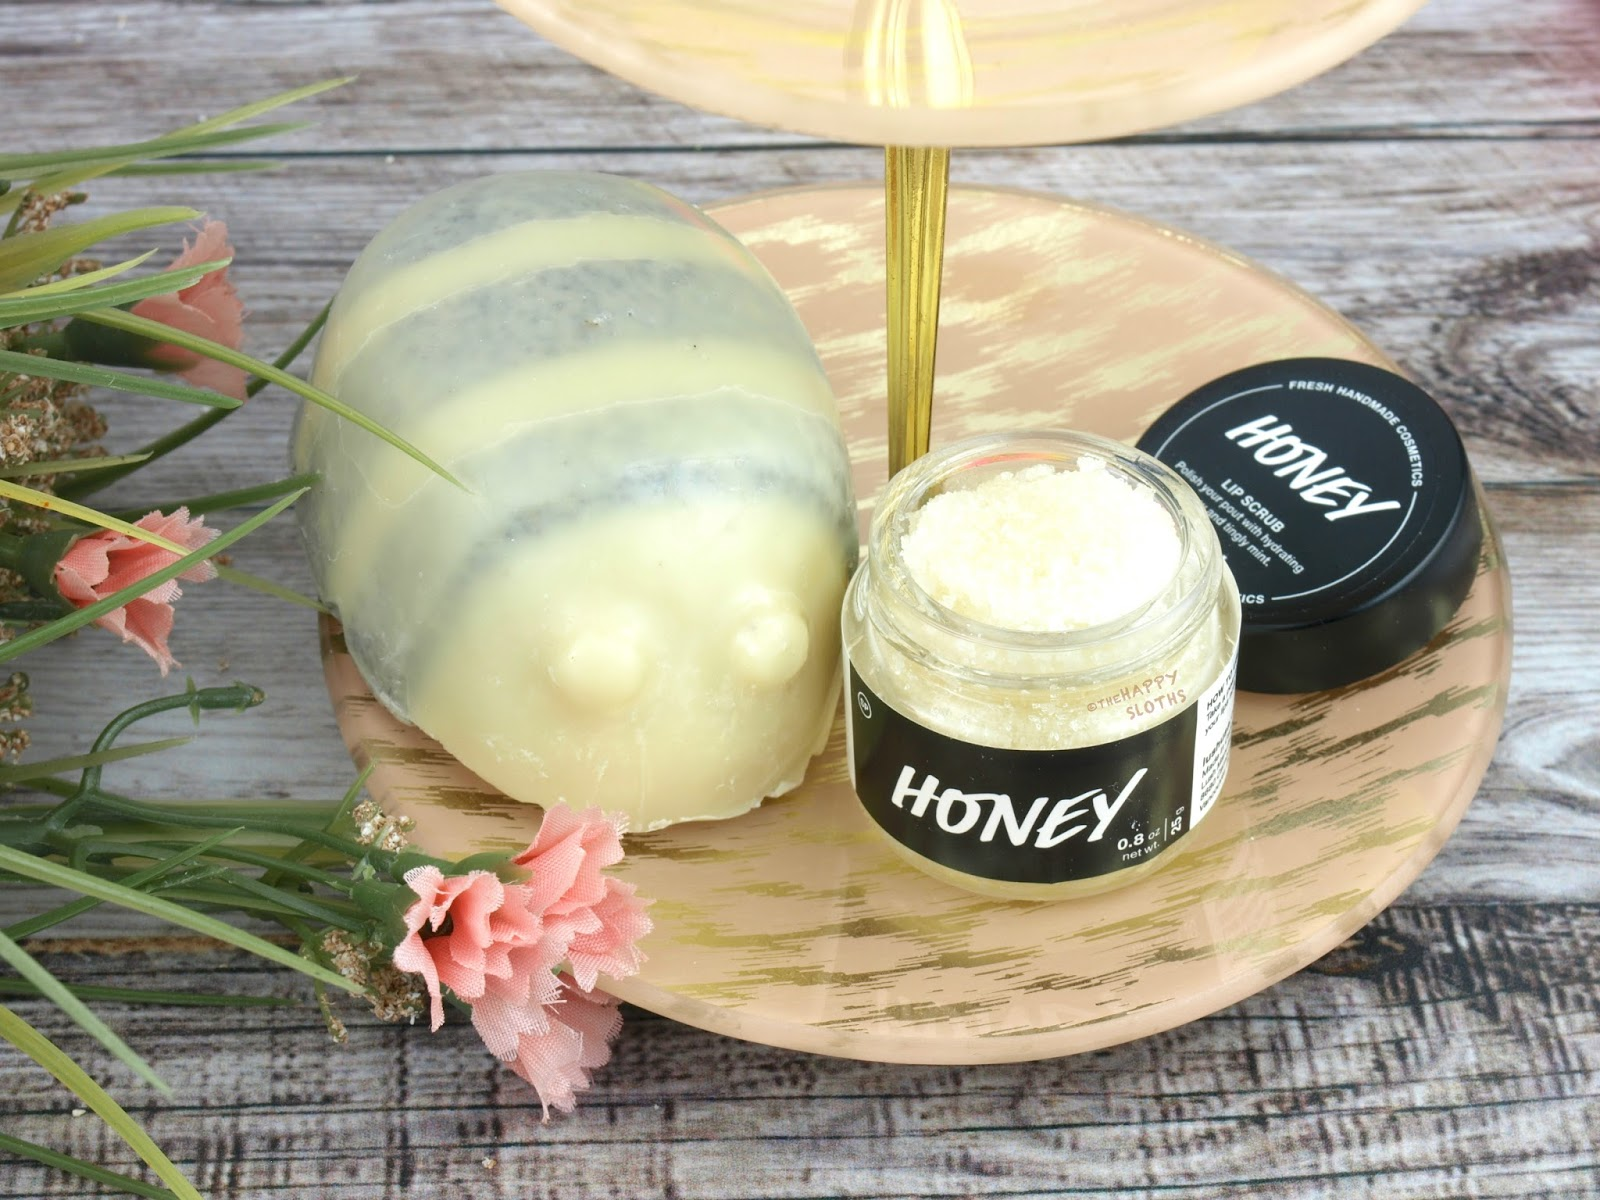 Lush Mother's Day 2017 Gift Guide | Scrubee Honey | Lip Scrub